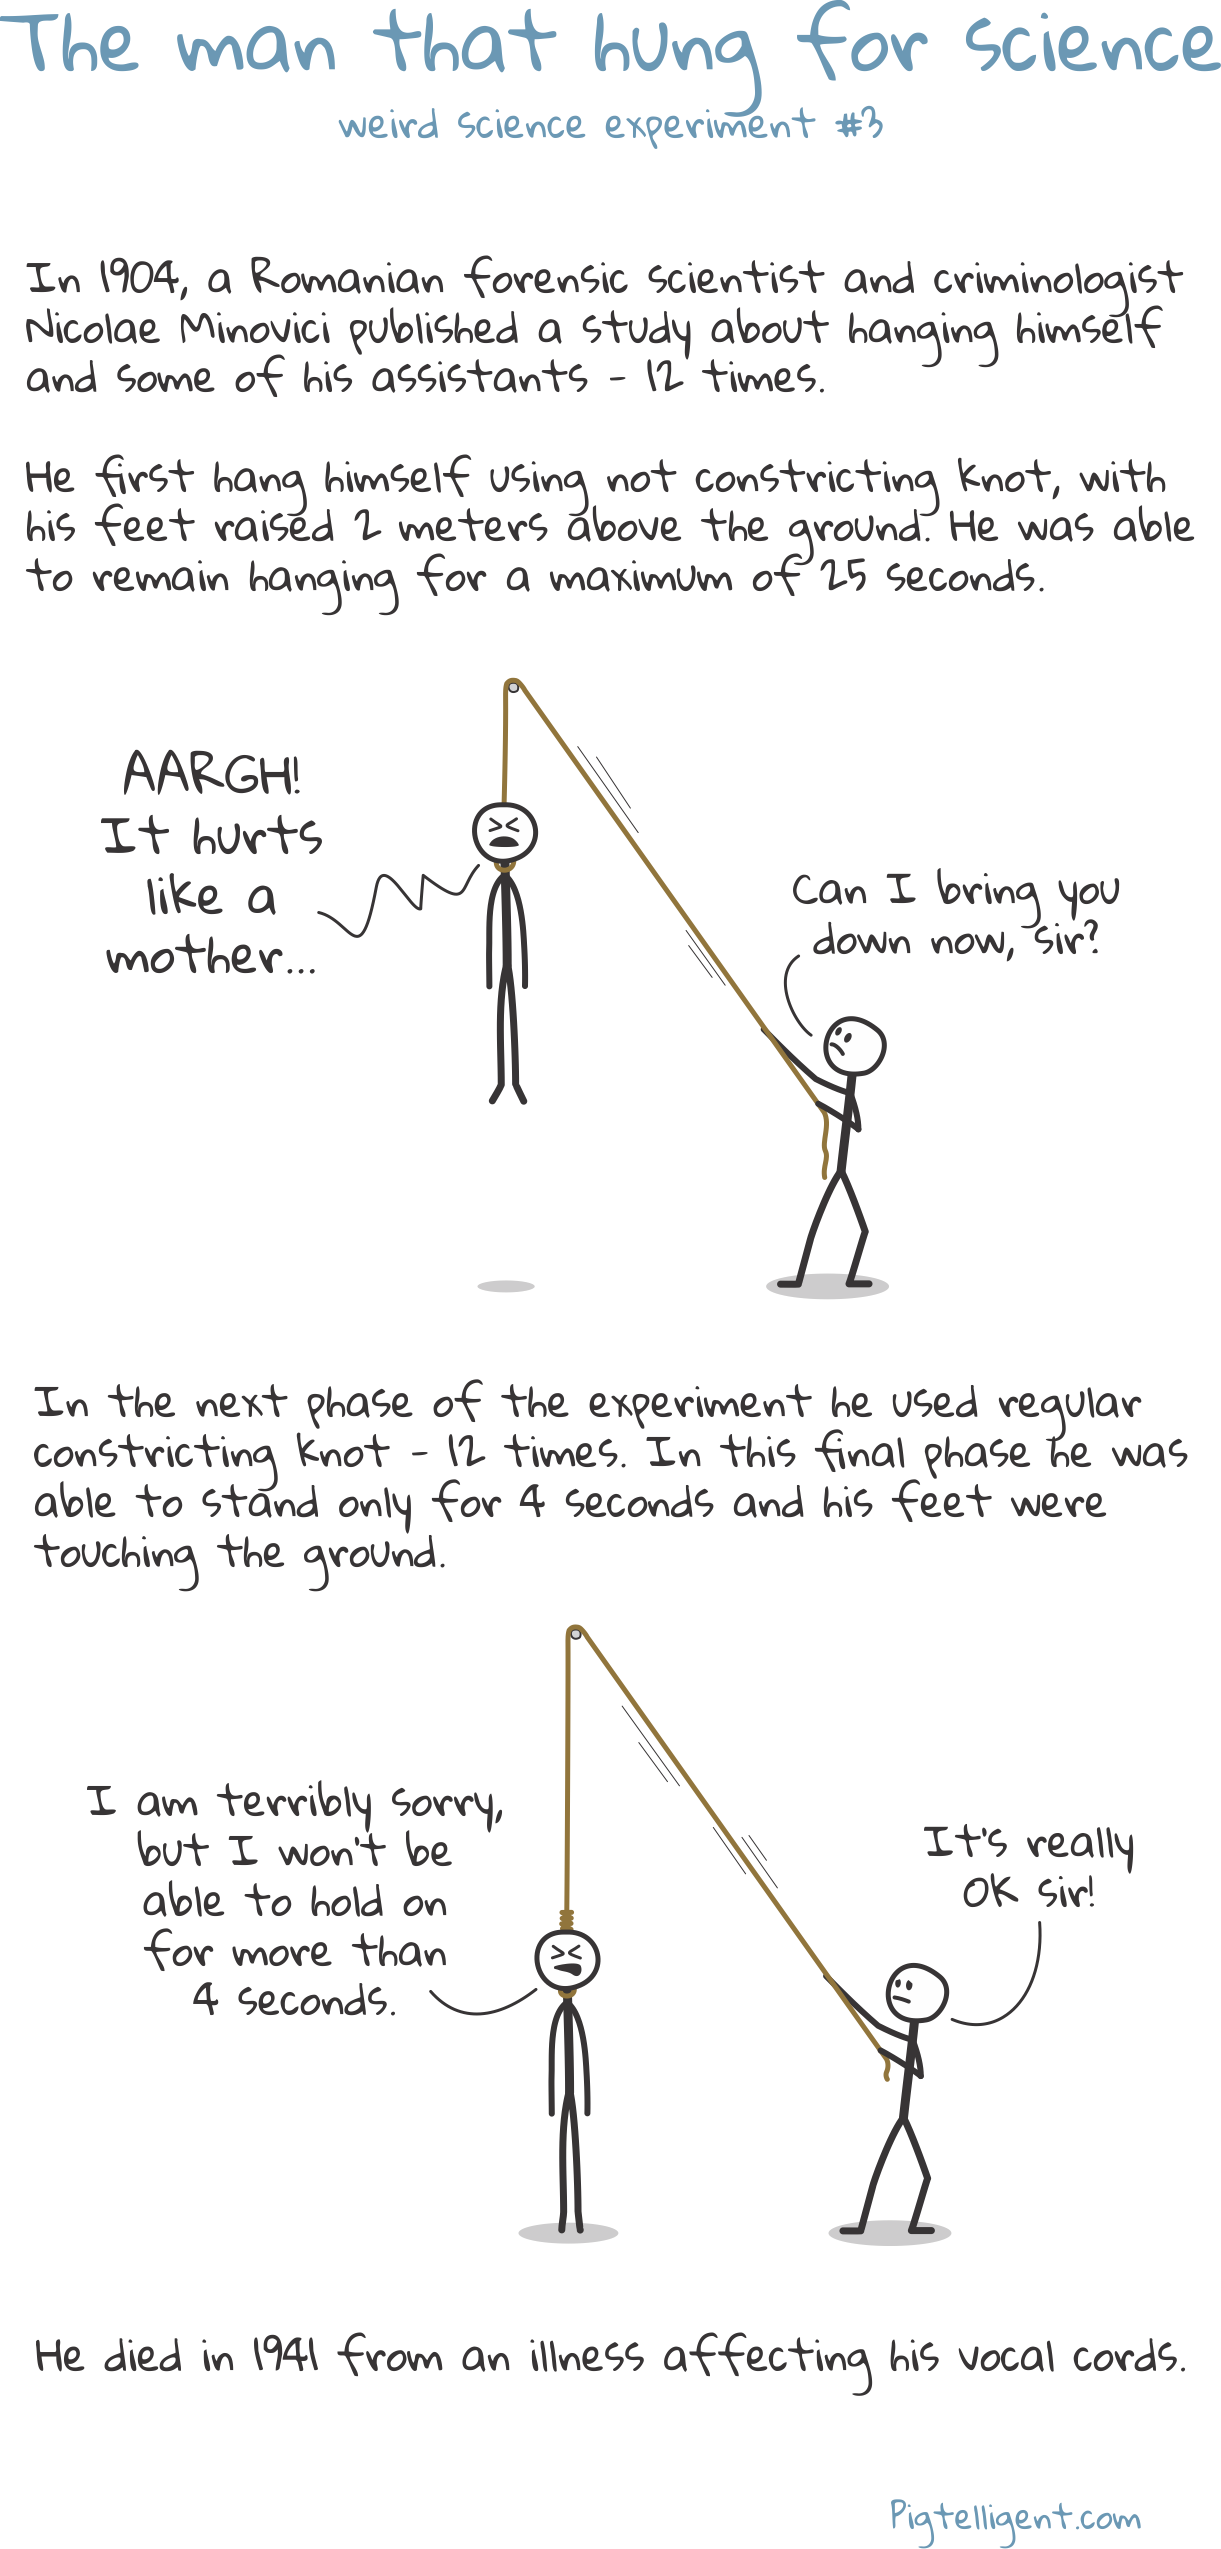 The man that hung for science - weird science experiment no. 3